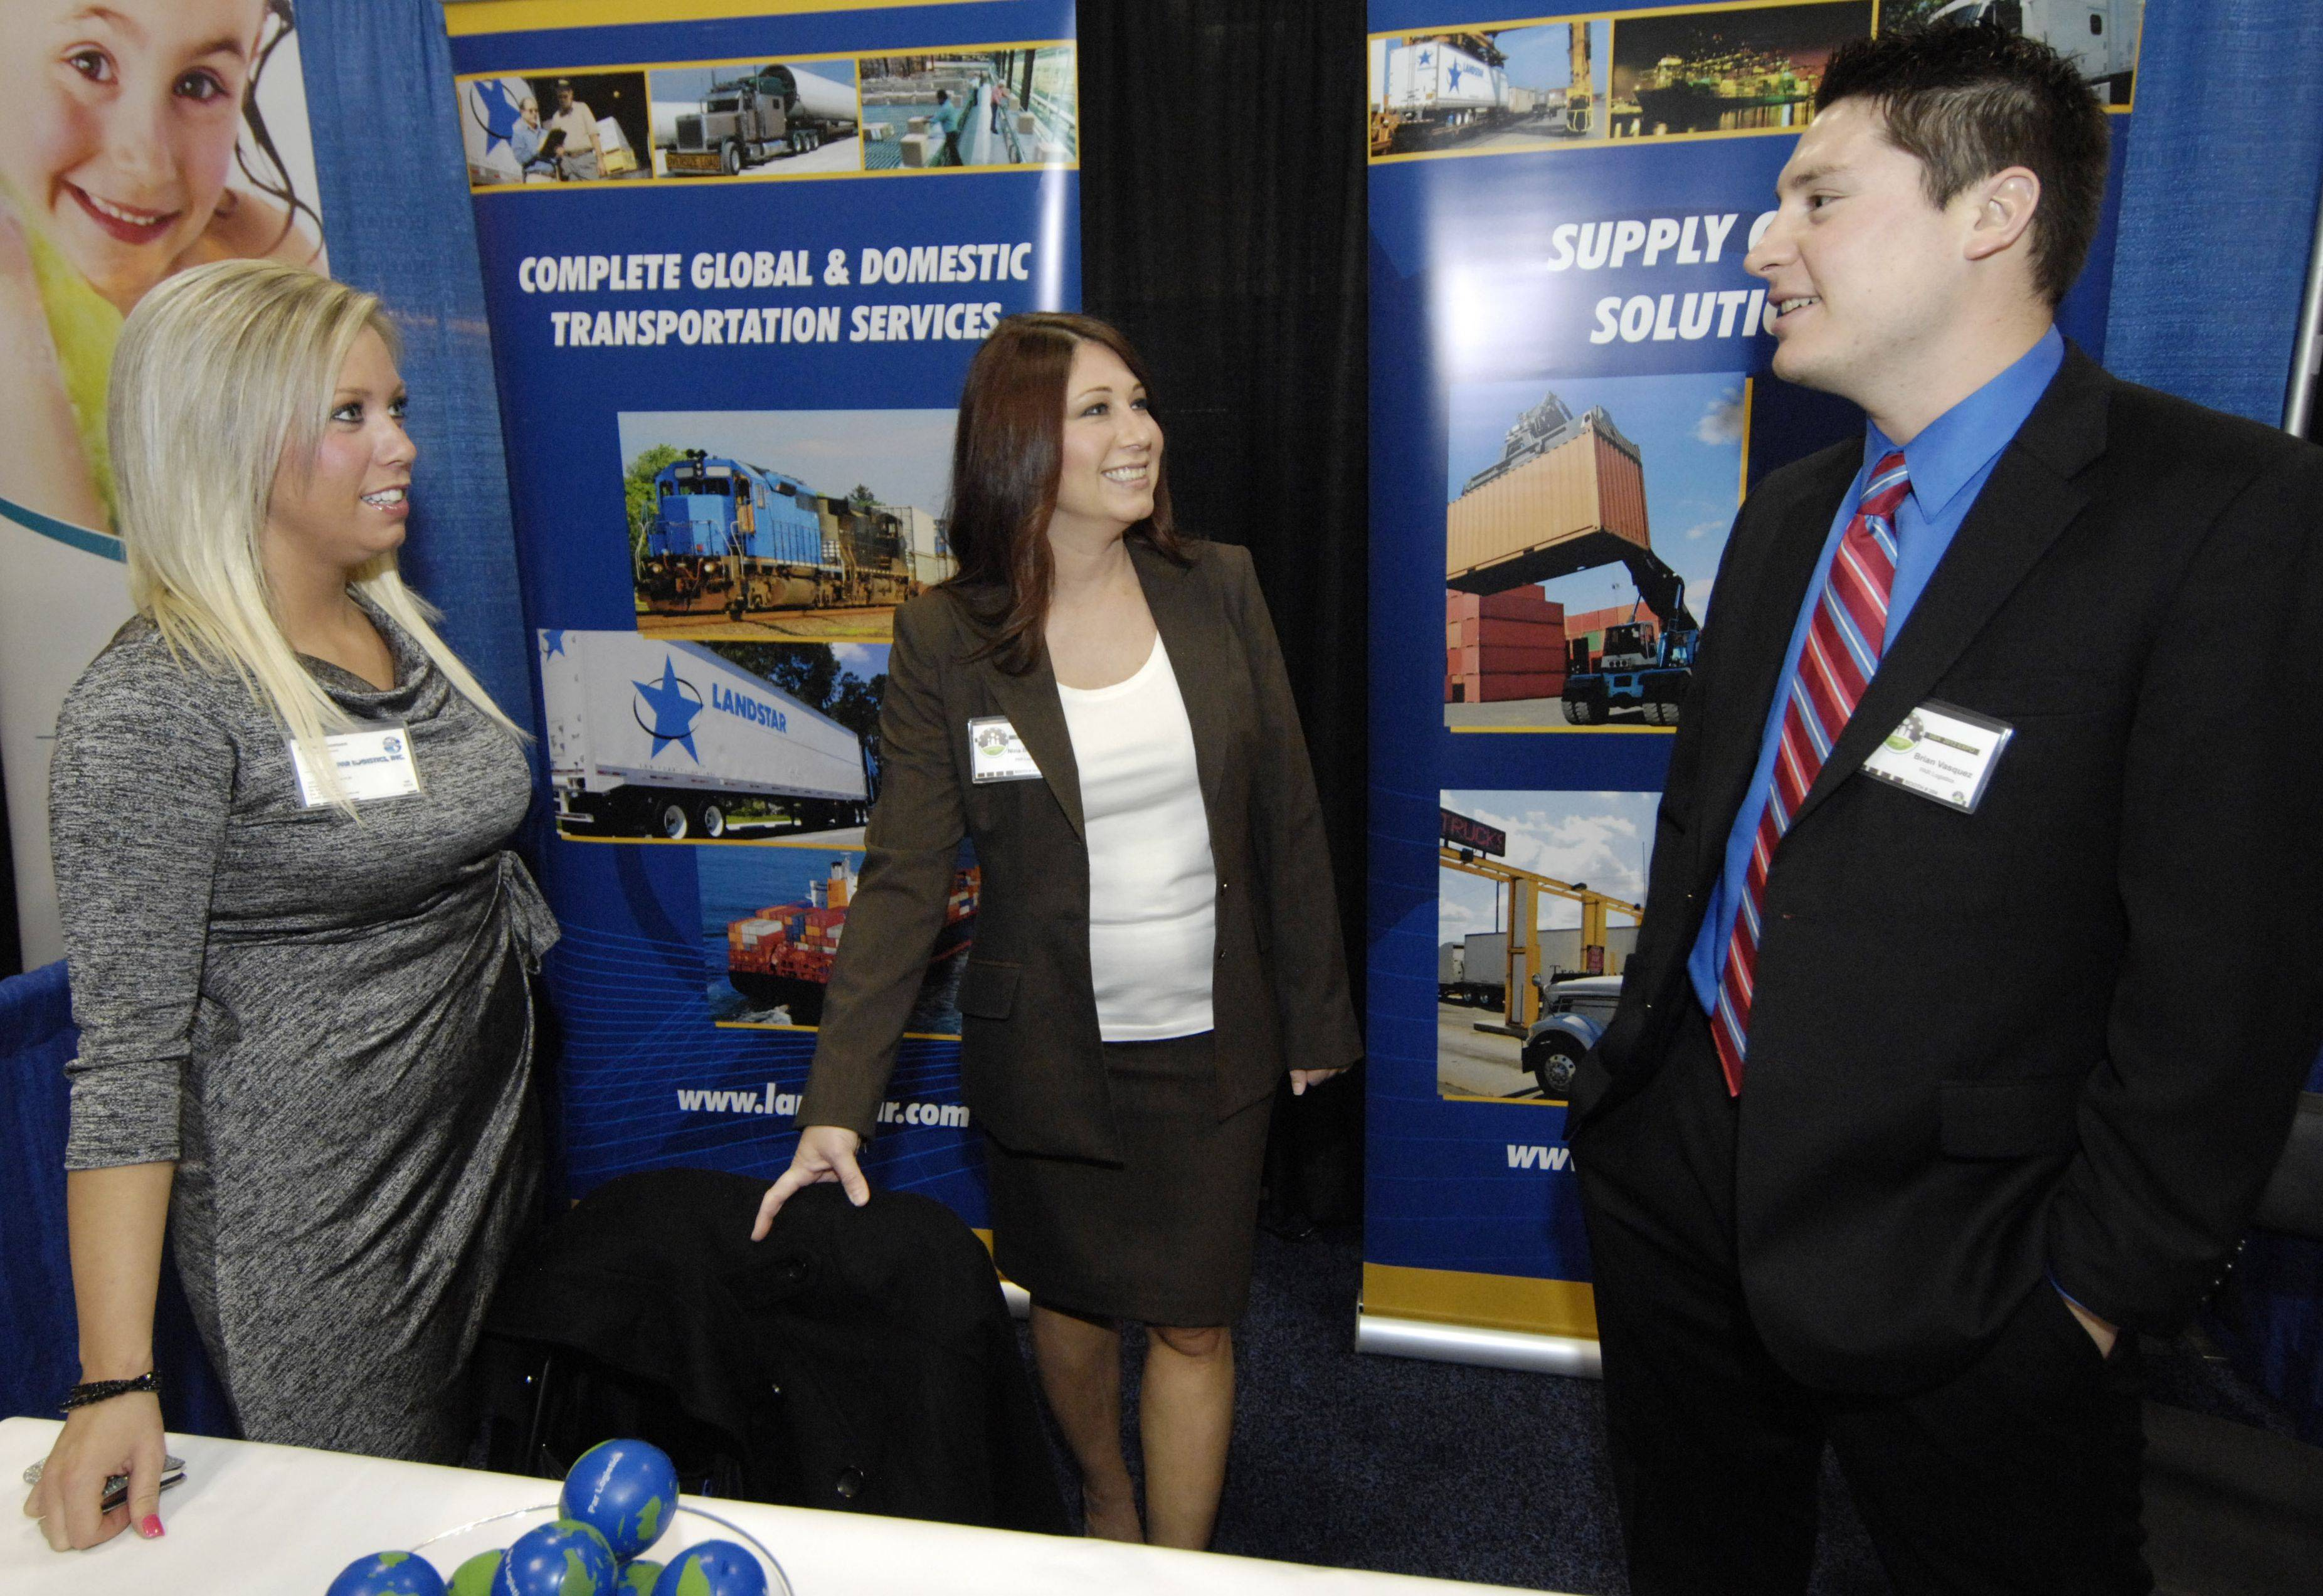 Amanda Thomsen, from left, Nina Bongiovanni and Brian Vasquez staff the Par Logistics booth during the Schaumburg Business Association business expo at the Renaissance Schaumburg Convention Center.